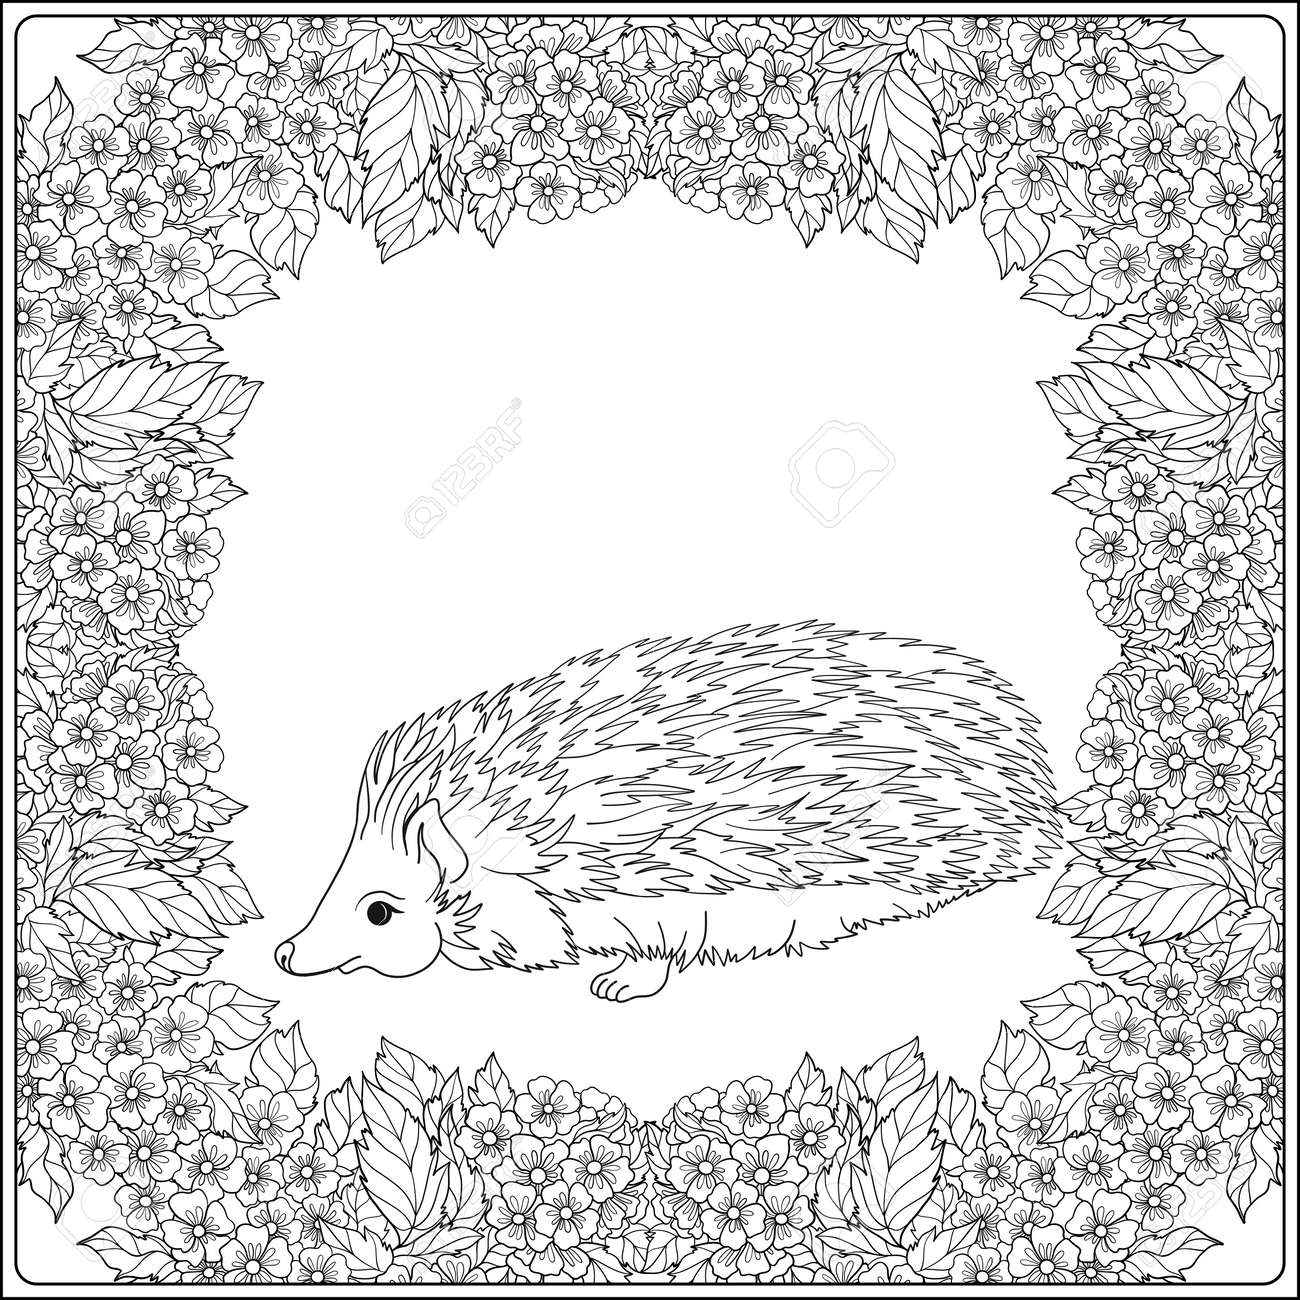 Coloring Page With Lovely Hedgehog In The Garden. Coloring Book ...